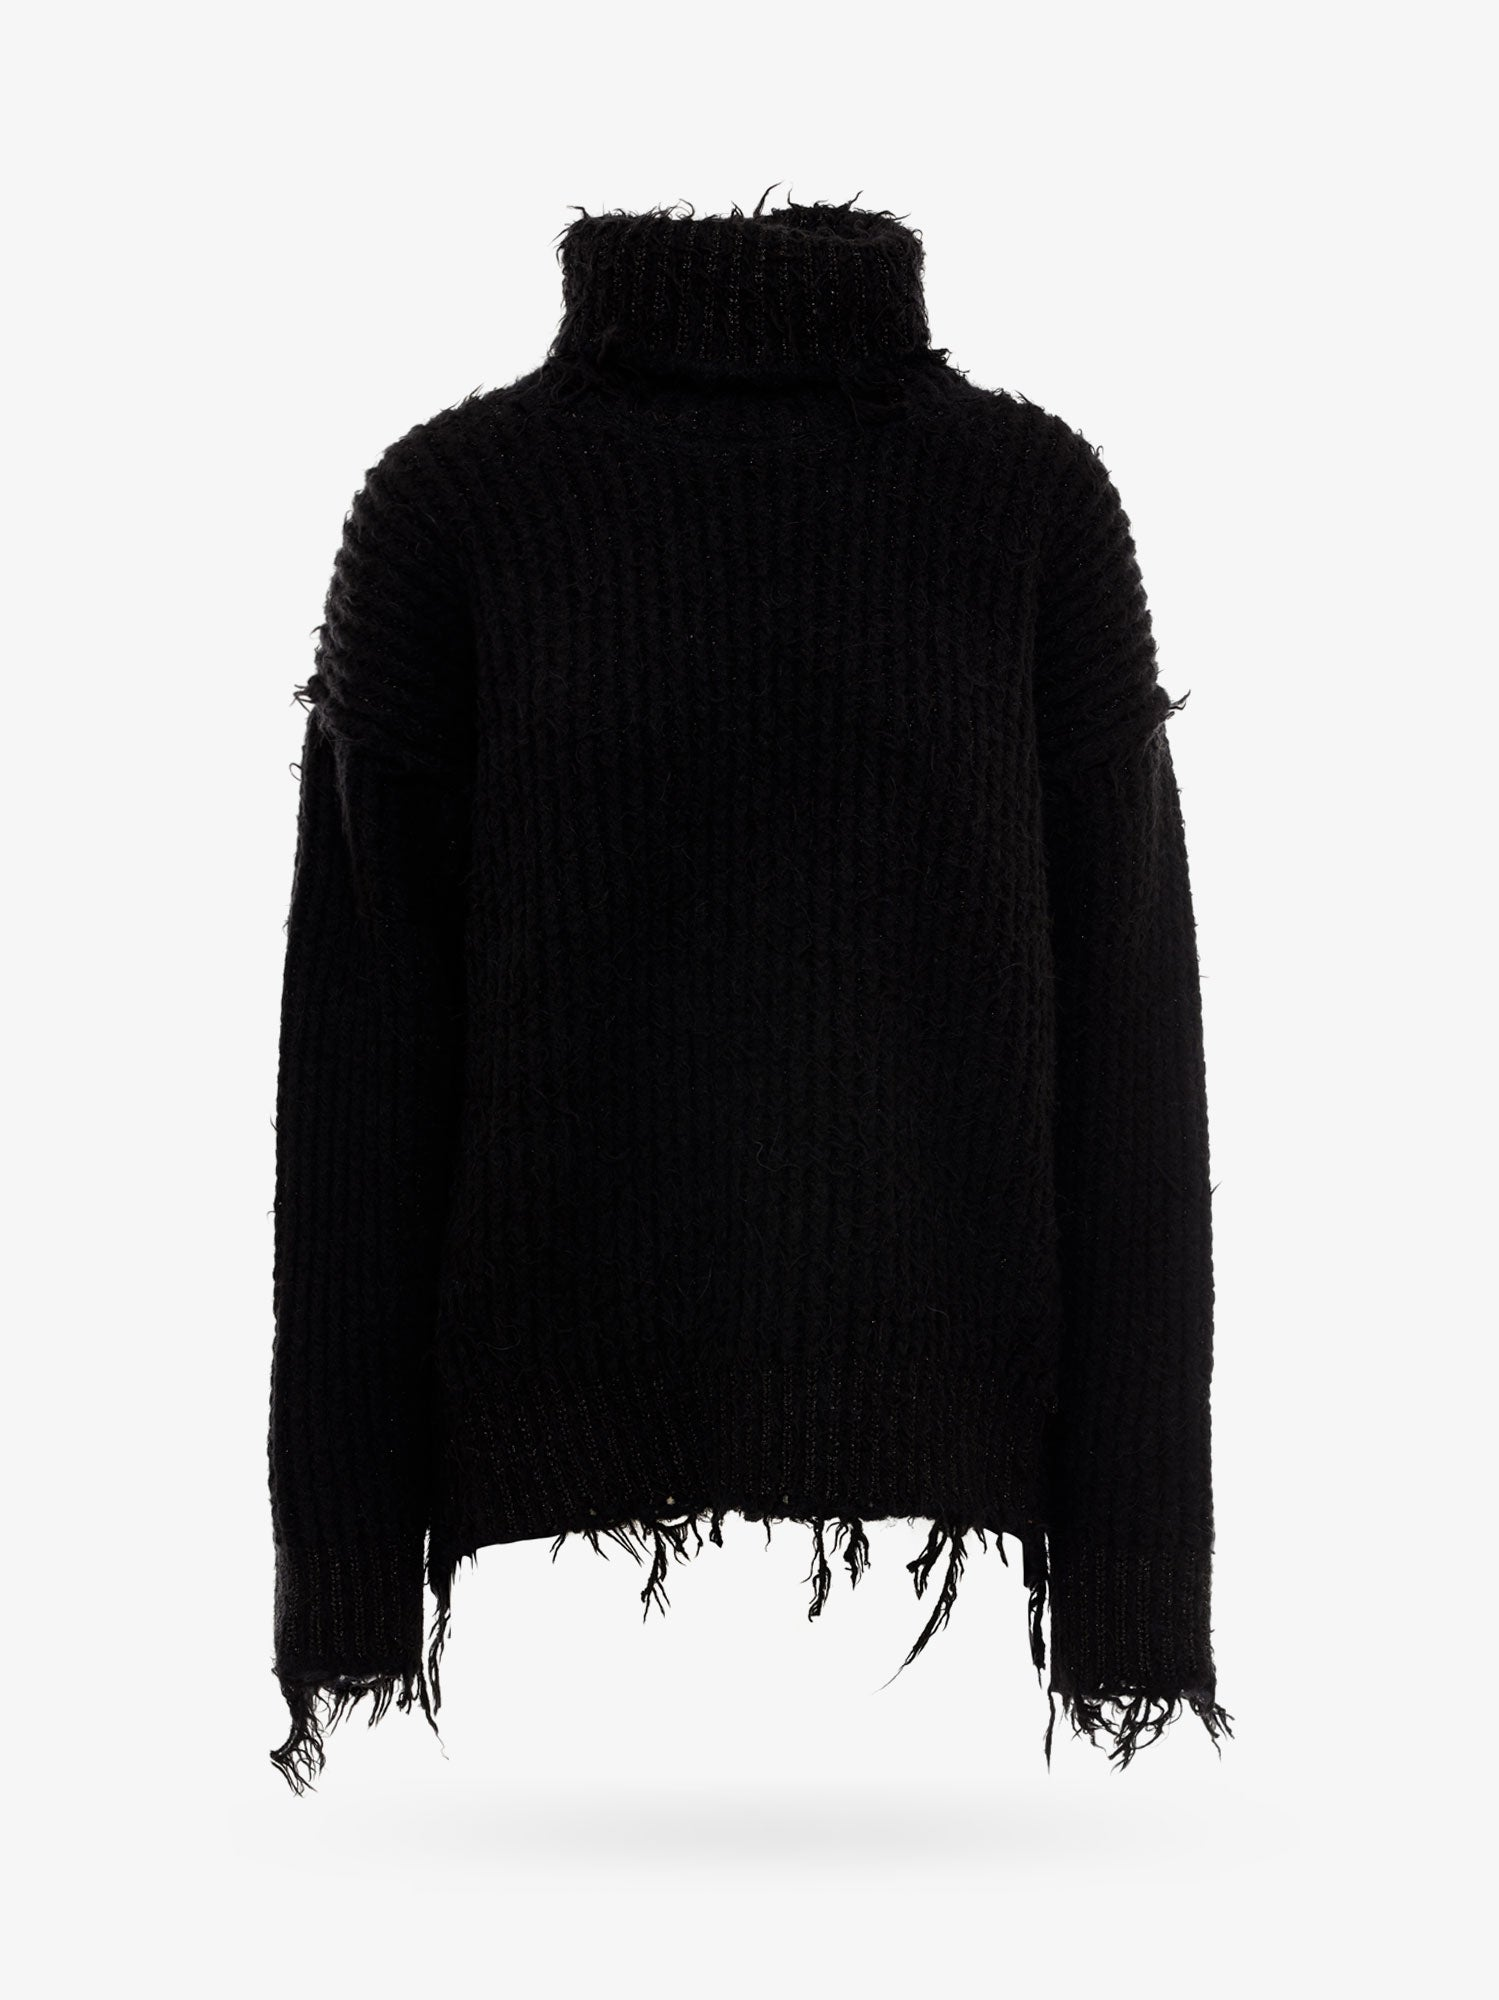 2 MONCLER 1952 SWEATER